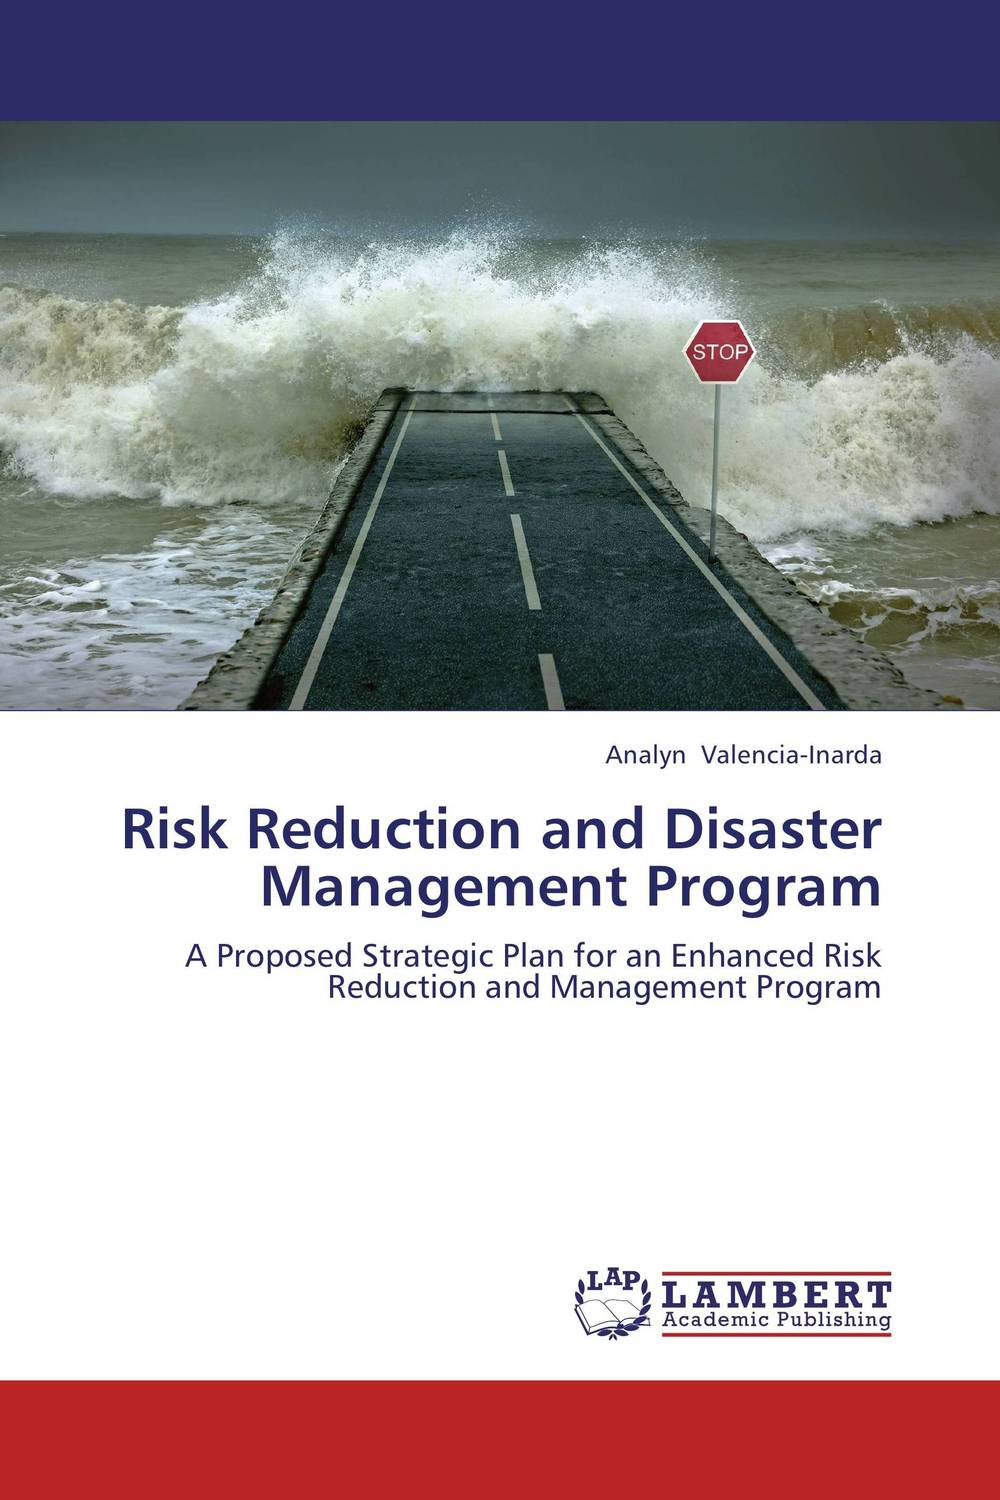 где купить  Risk Reduction and Disaster Management Program  по лучшей цене